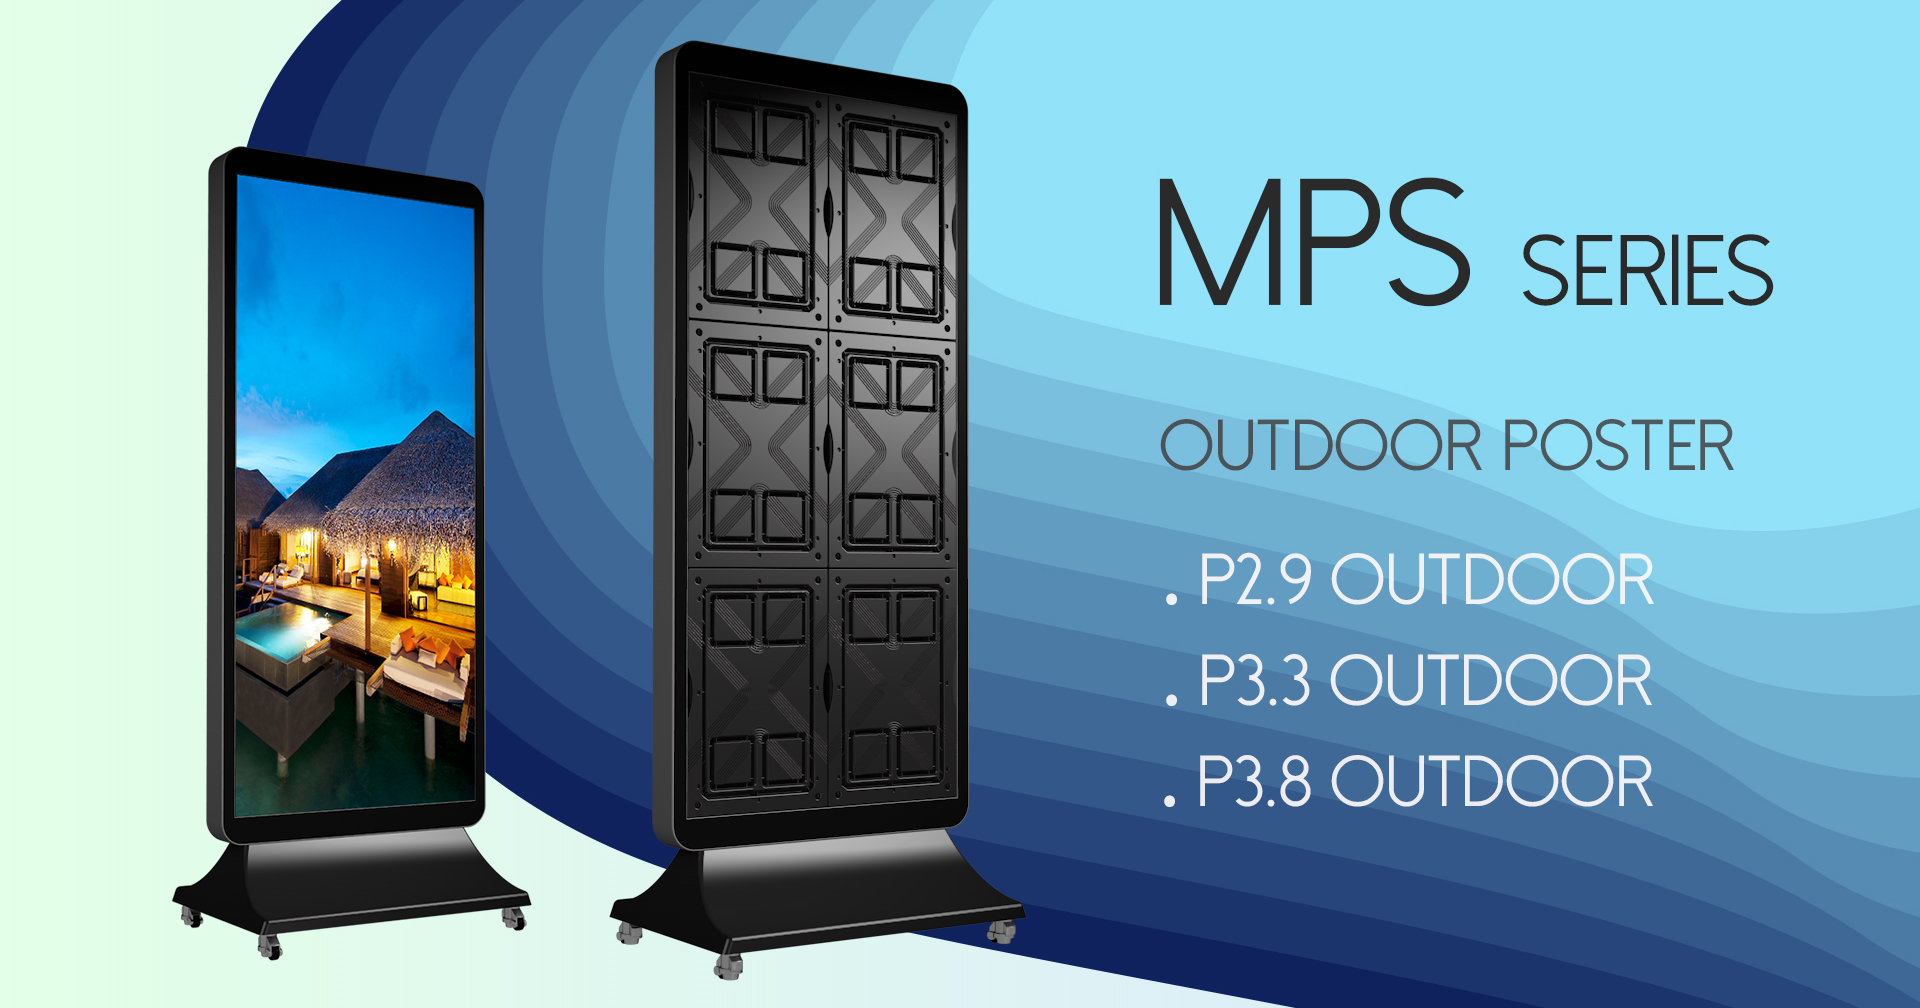 Maxtop MPs Series Poster LED Screen